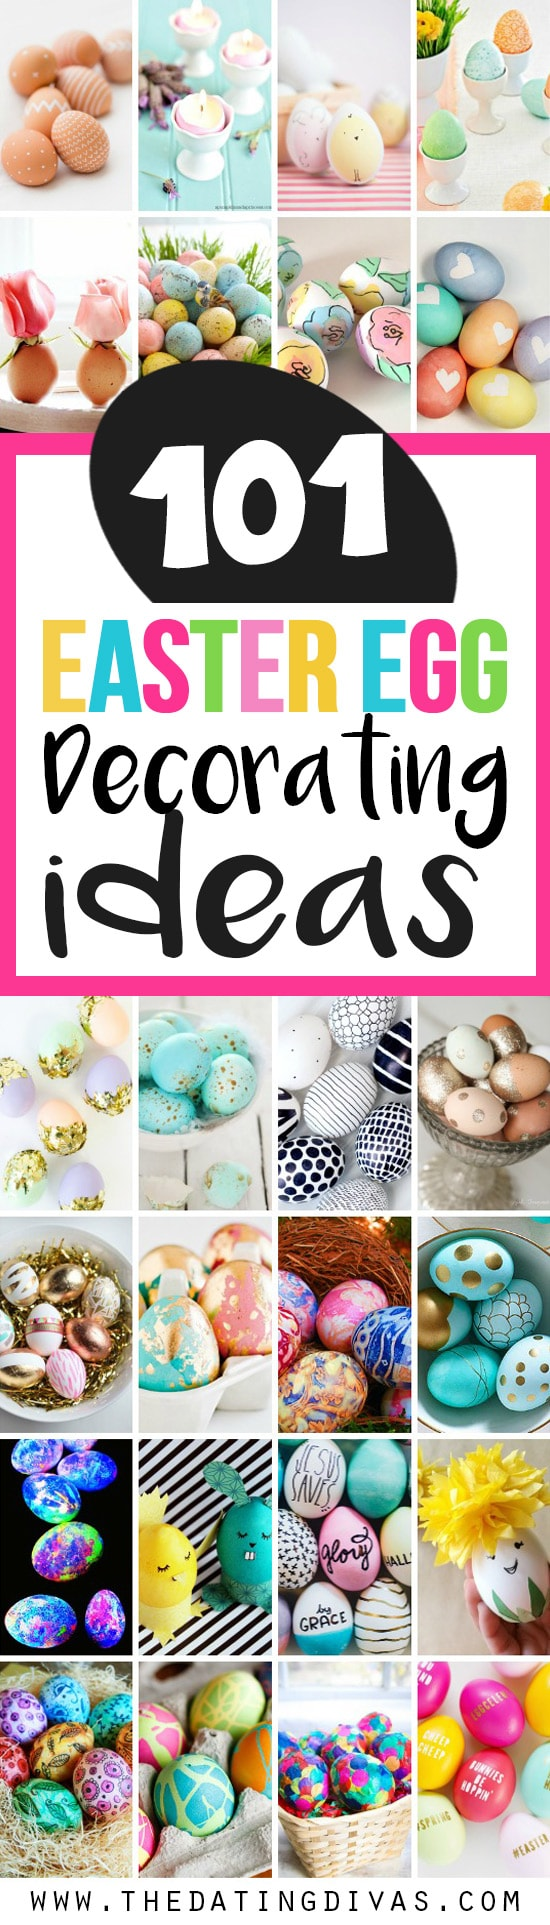 I can't wait to try these AMAZING egg decorating ideas with my kids and hubby! #eastereggdecorations #eastereggideas